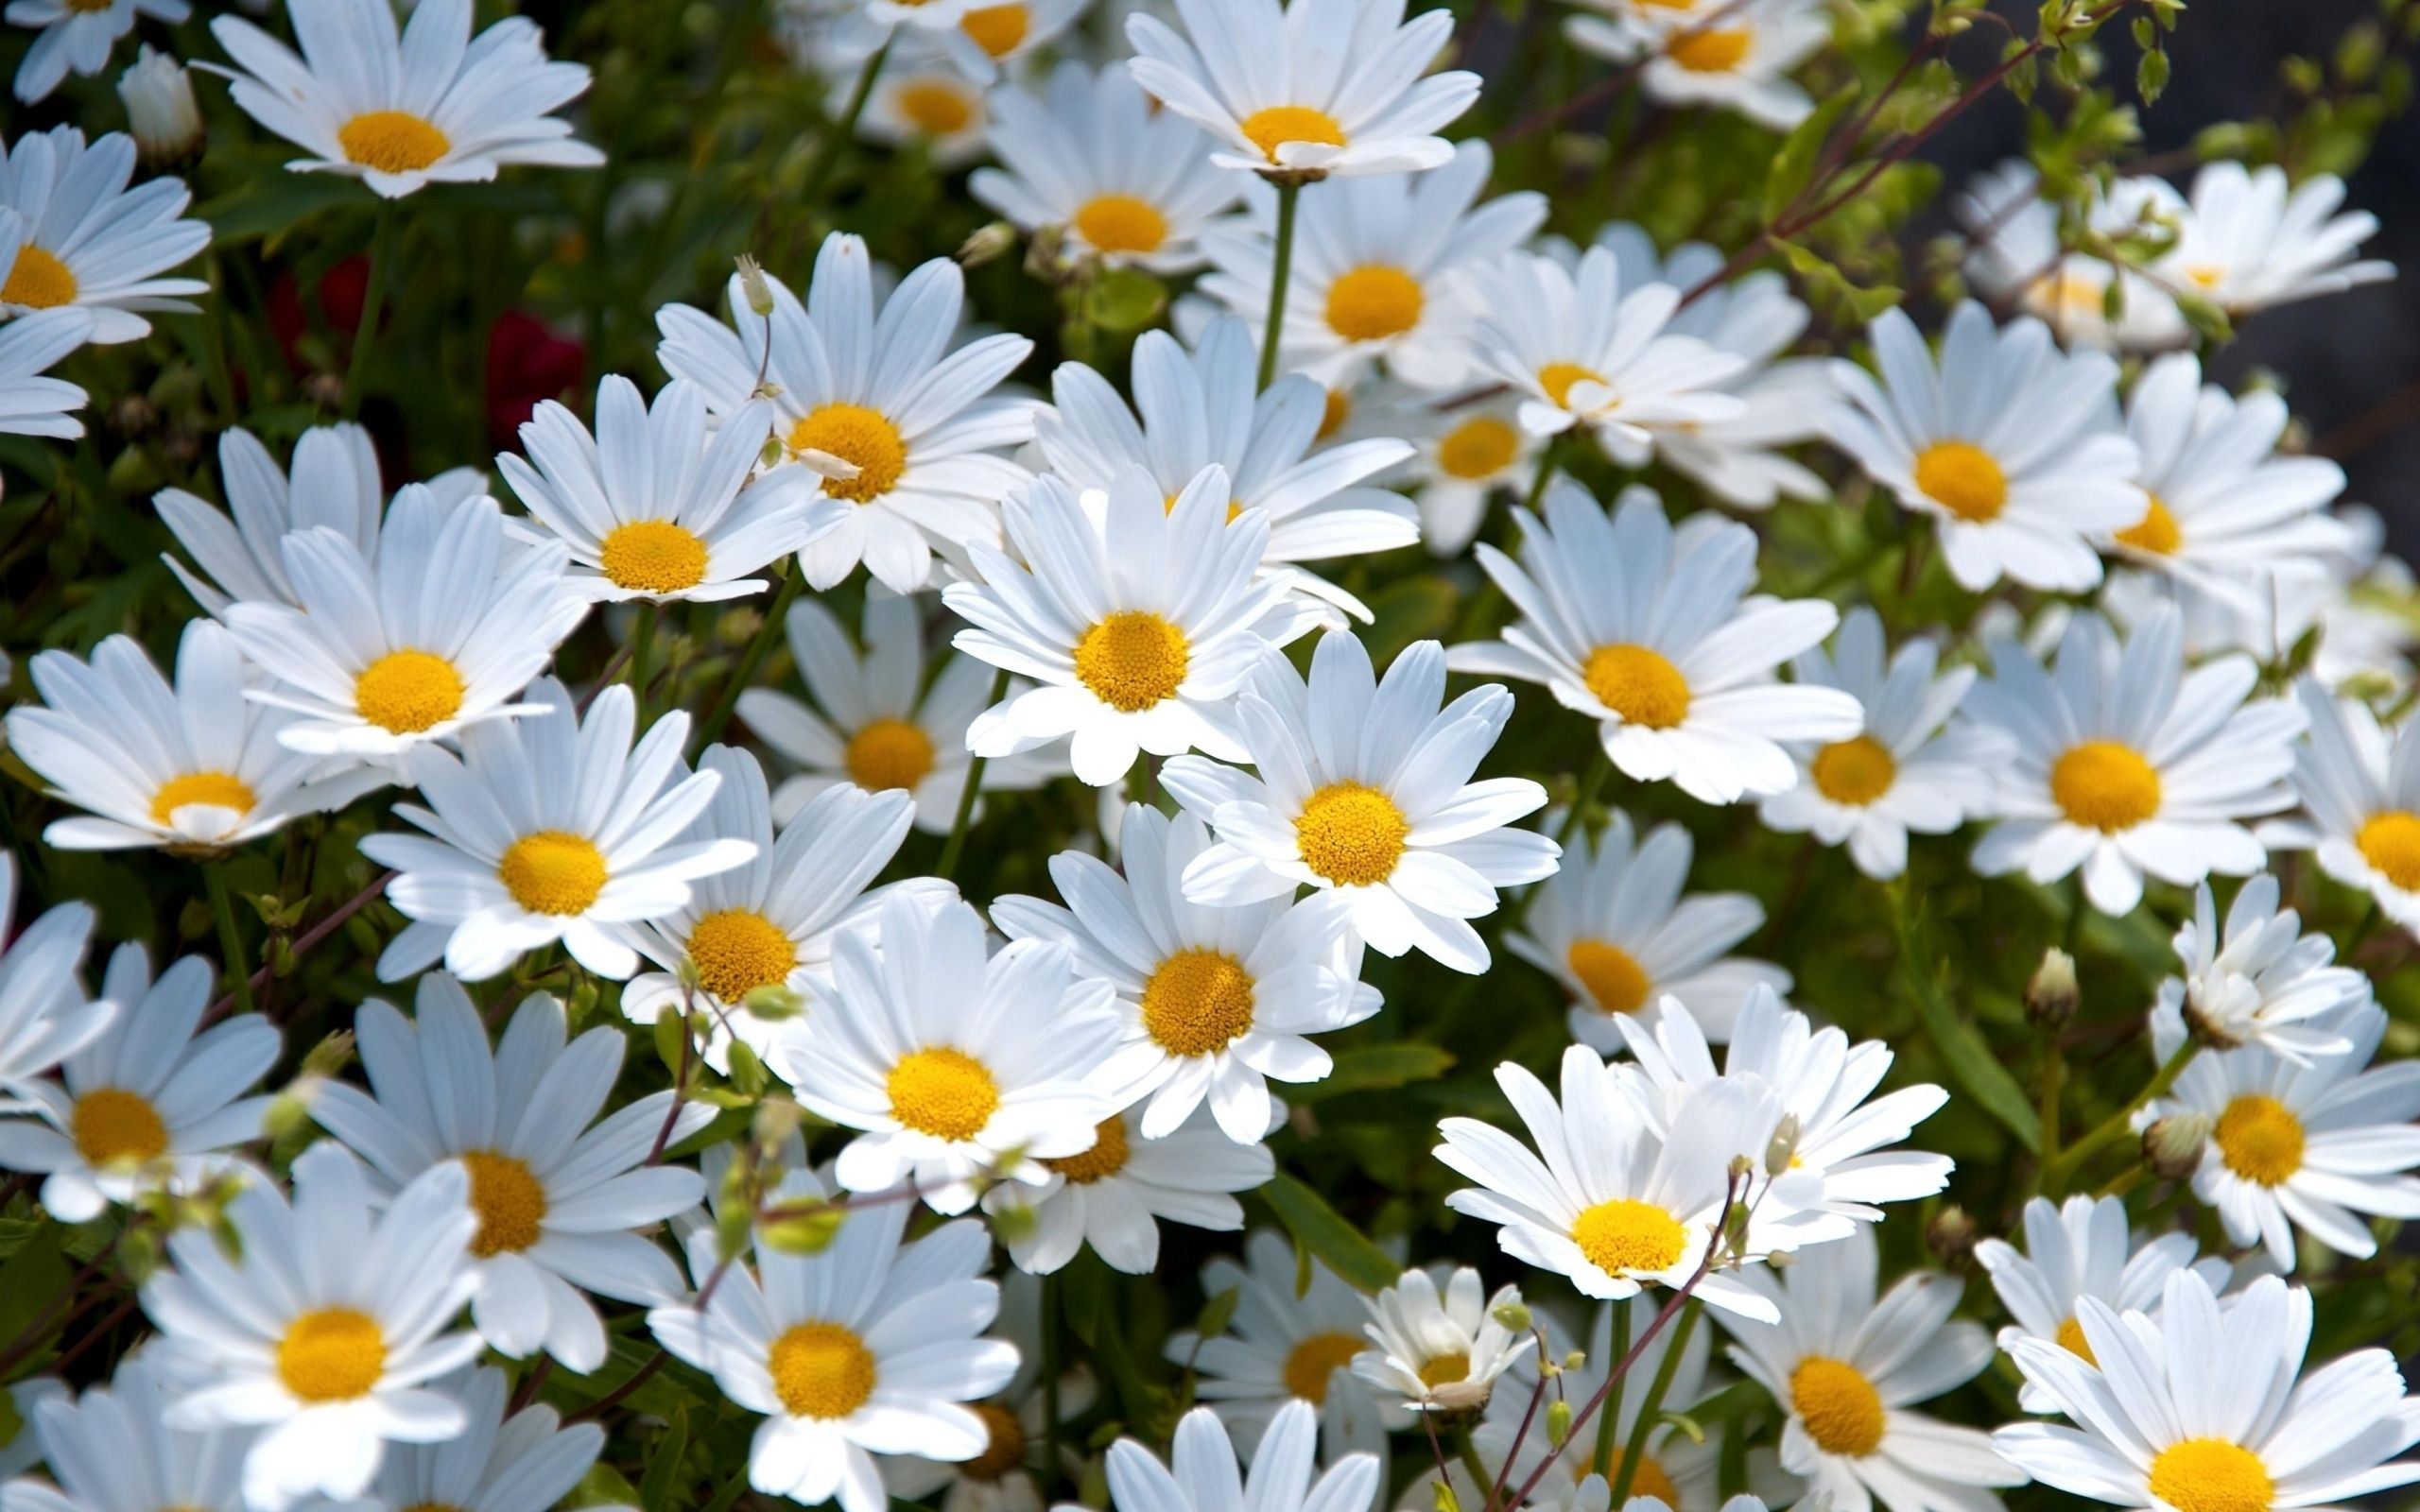 Check The Best Collection Of Daisy Wallpaper High Quality For Desktop Laptop Tablet And Daisy Wallpaper Flower Wallpaper Laptop Wallpaper Desktop Wallpapers